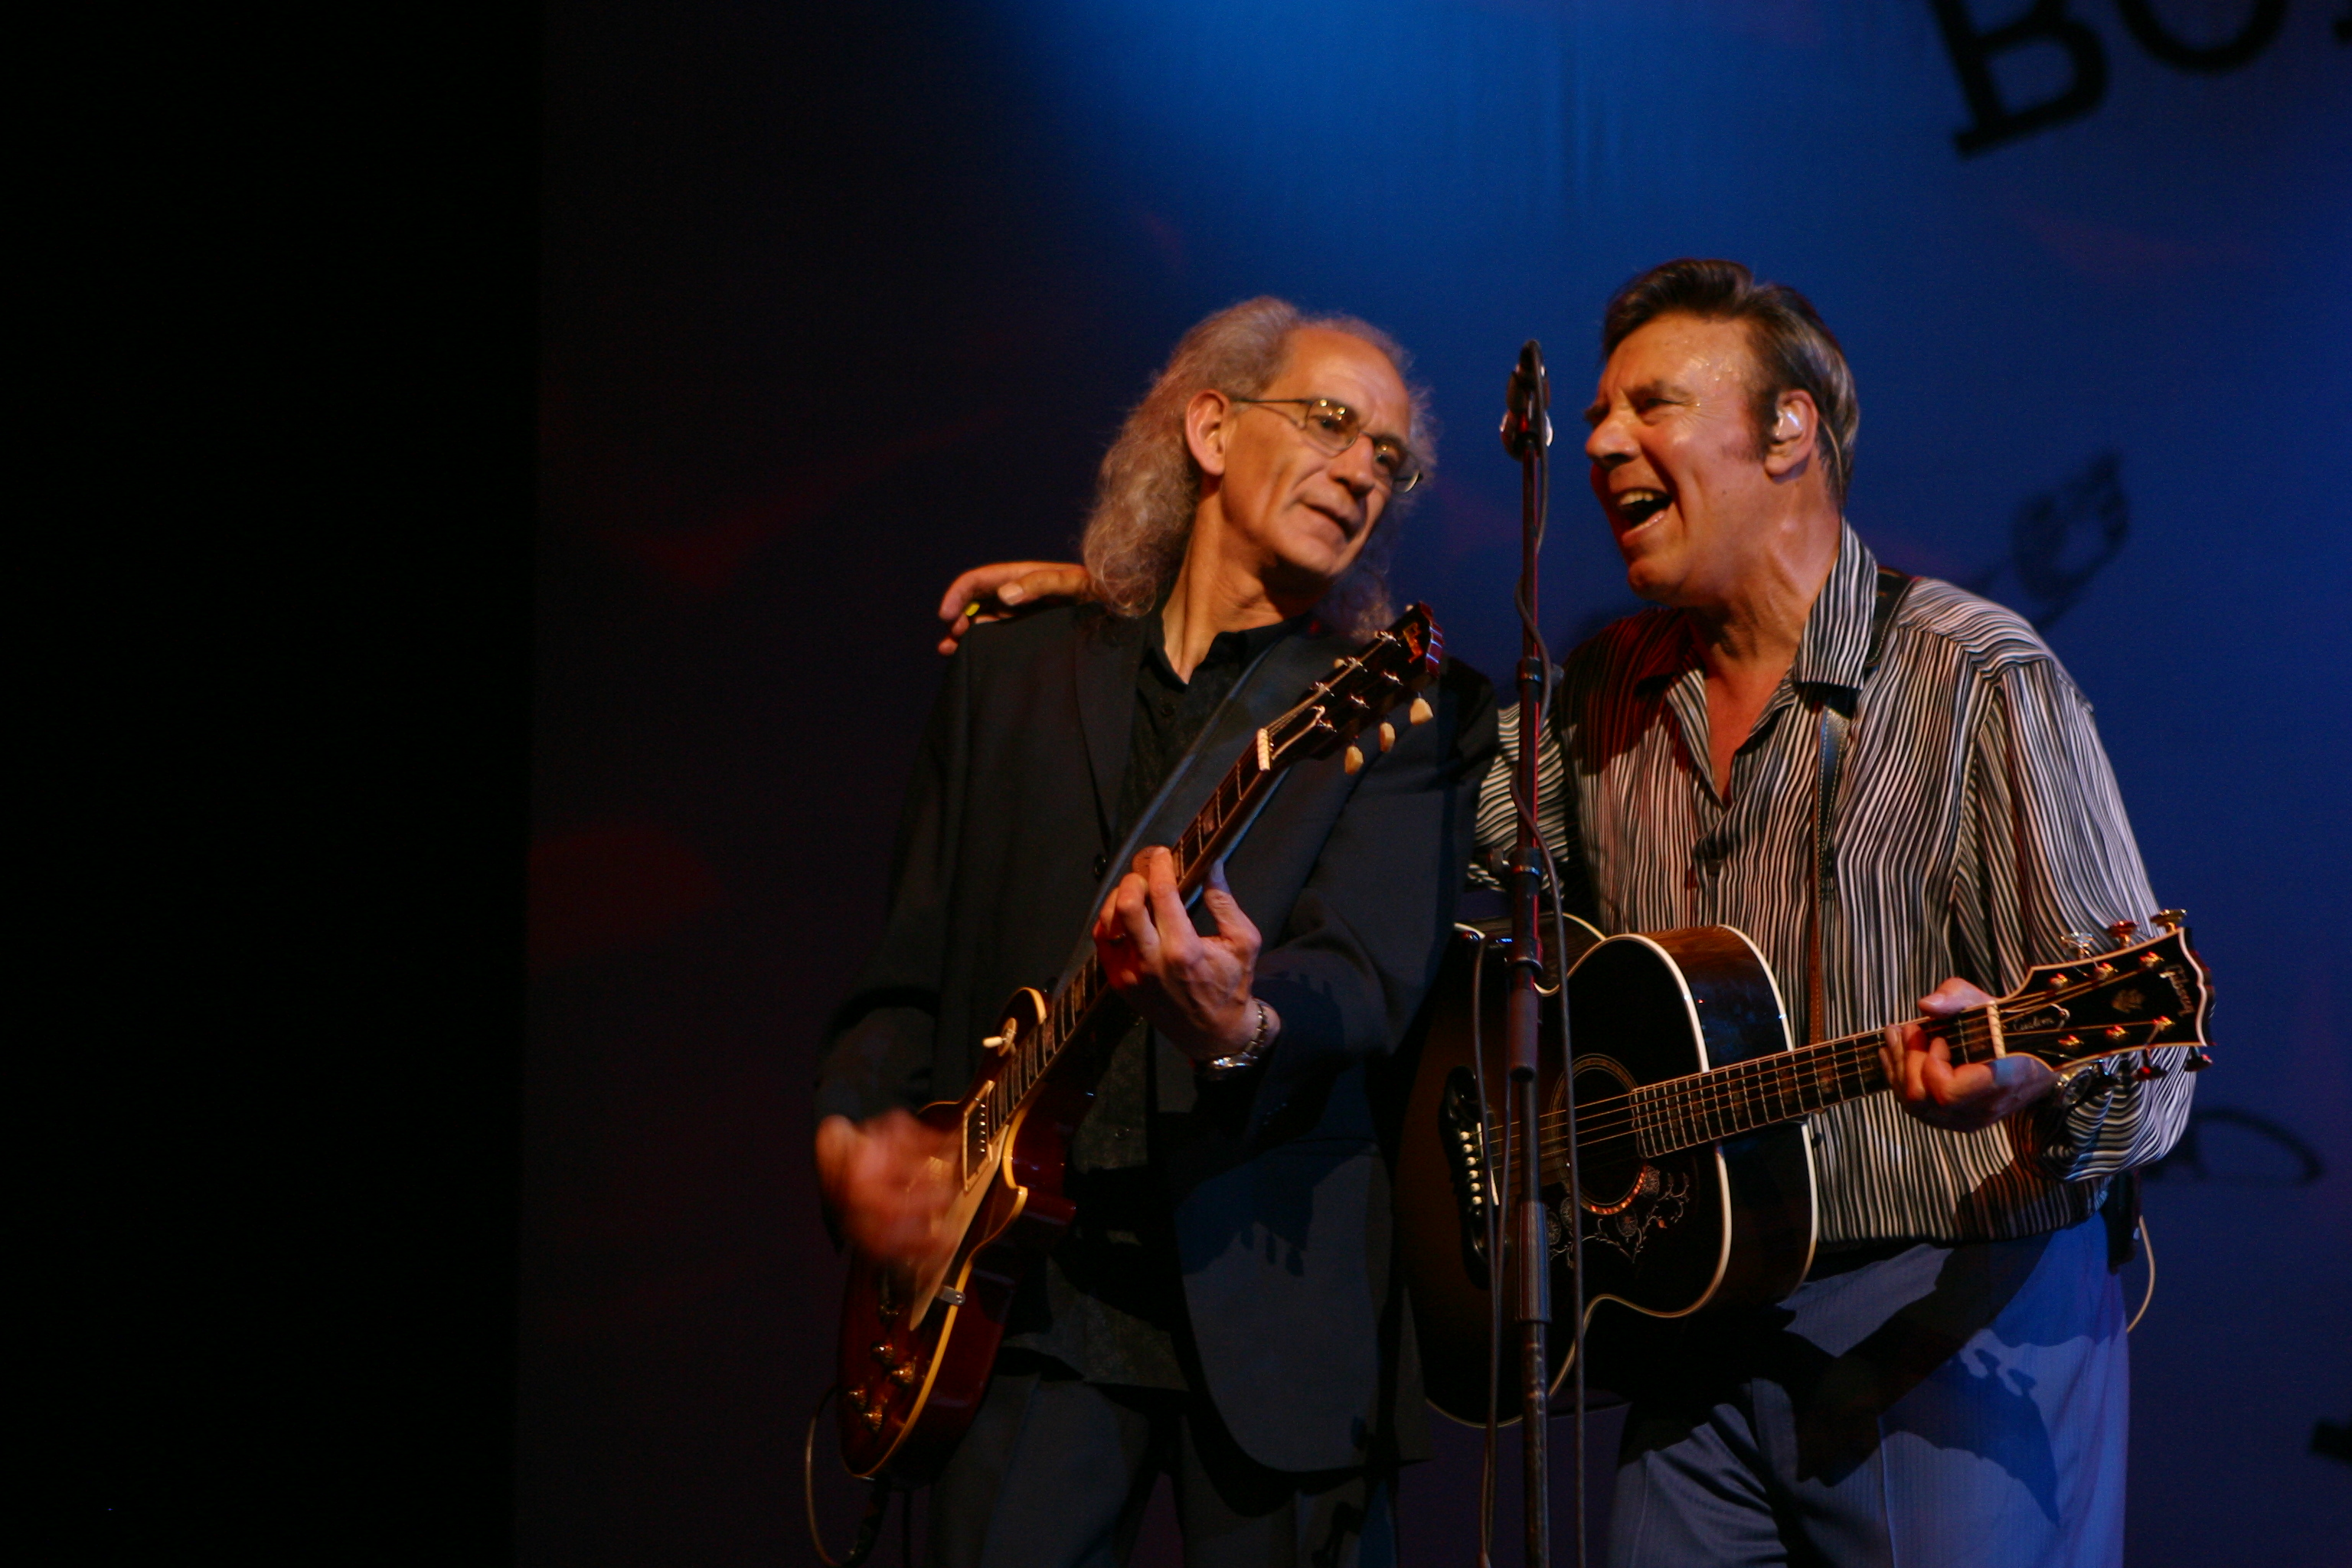 Marty Wilde and guests - London Palladium 27-05-07